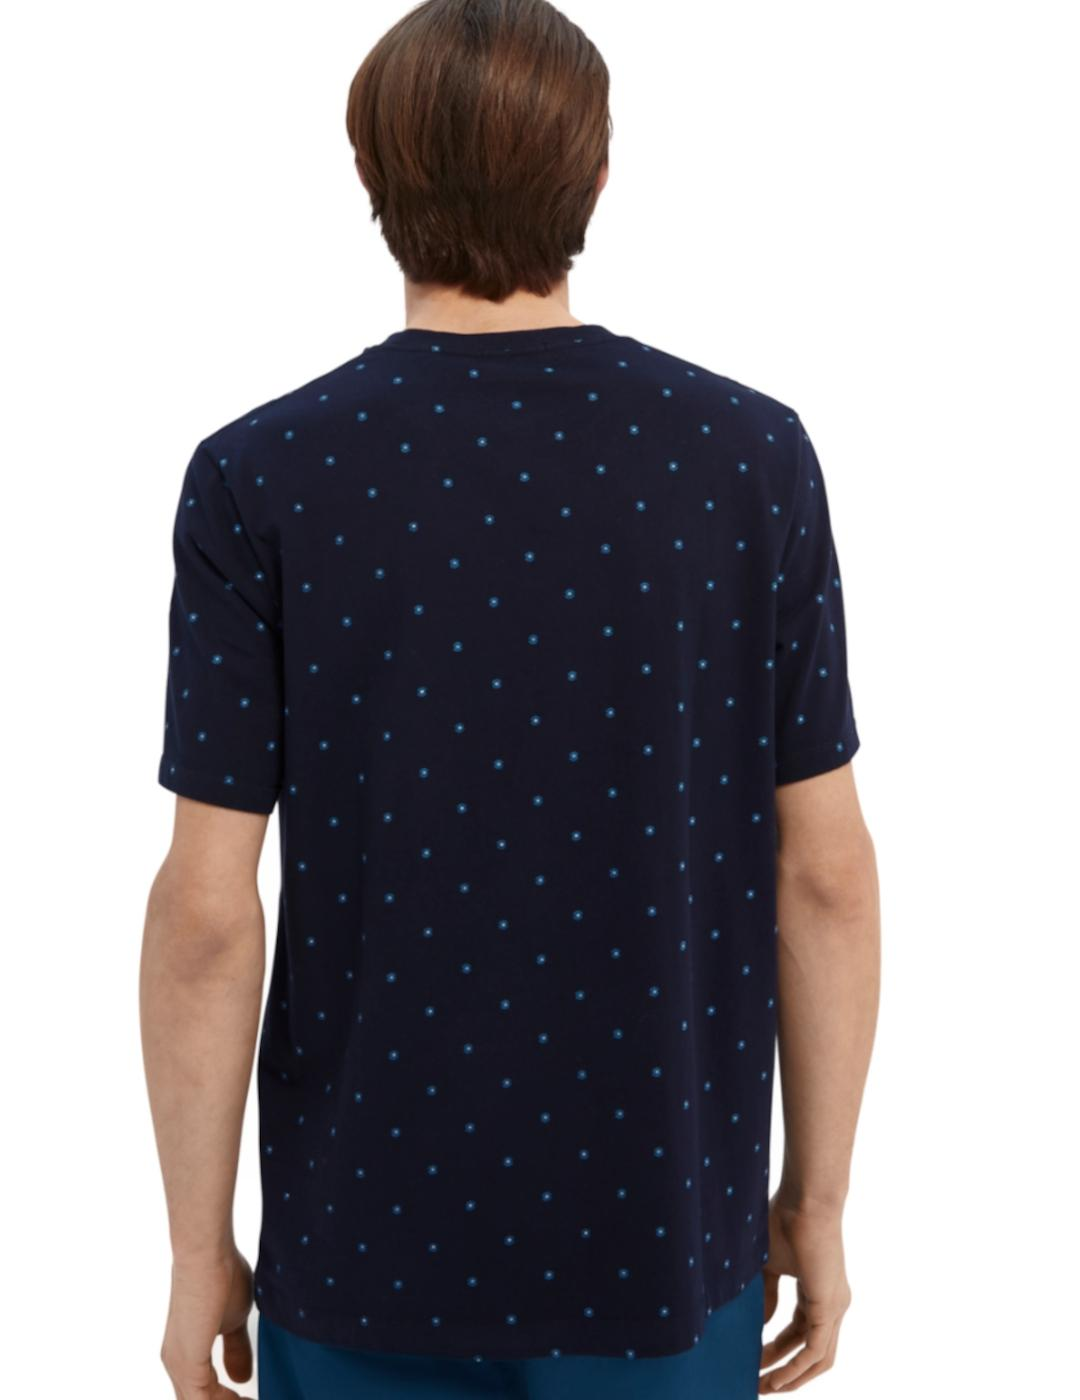 CLASSIC PATTERNED CORROS T-SHIRT-Y